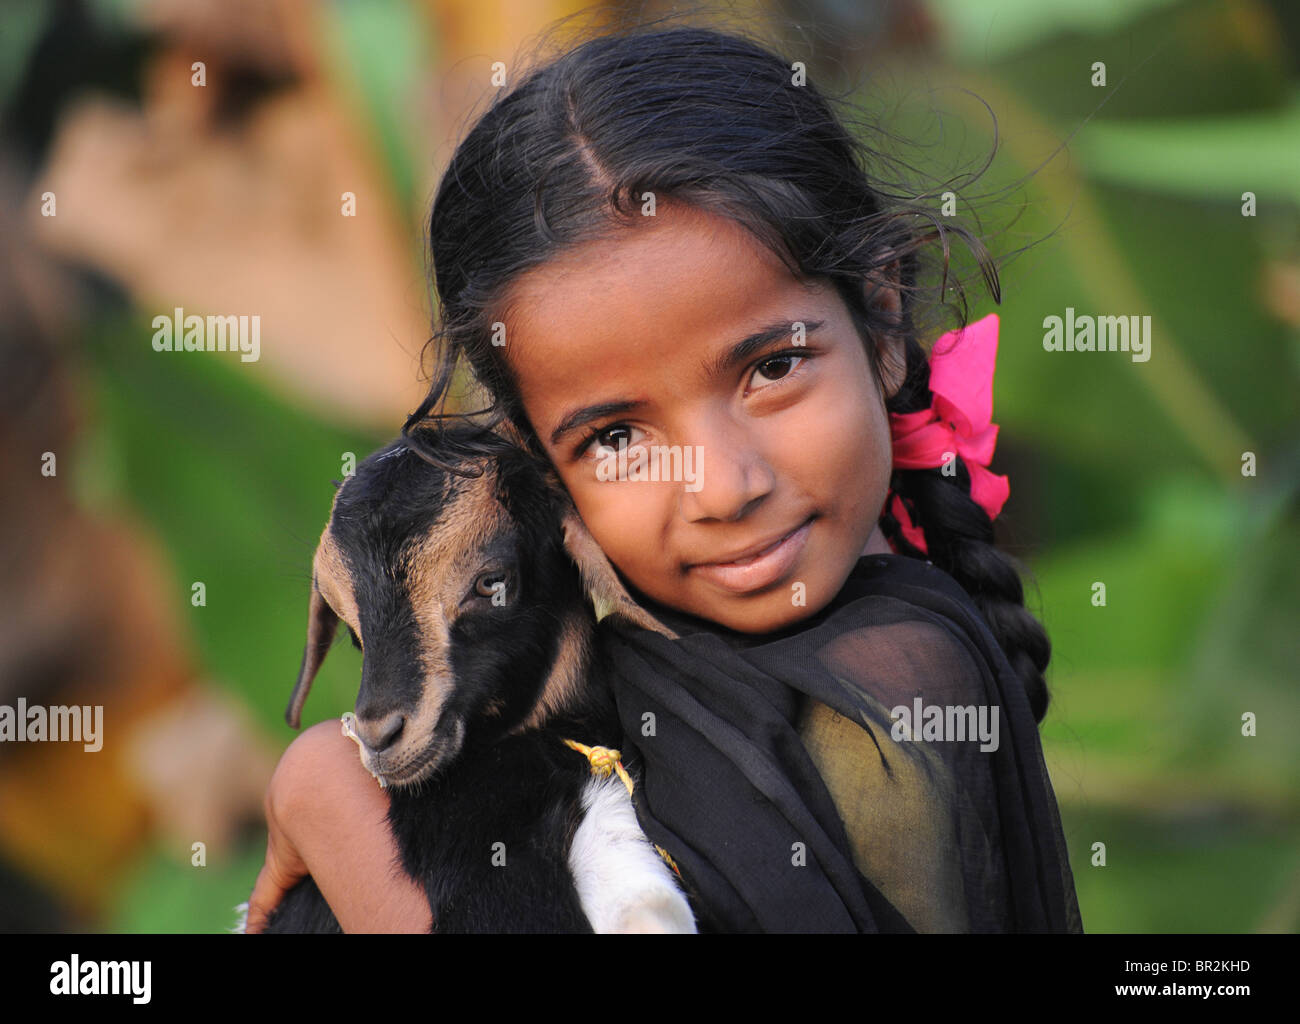 Portrait of an Indian girl with a goat, Kerala, India - Stock Image